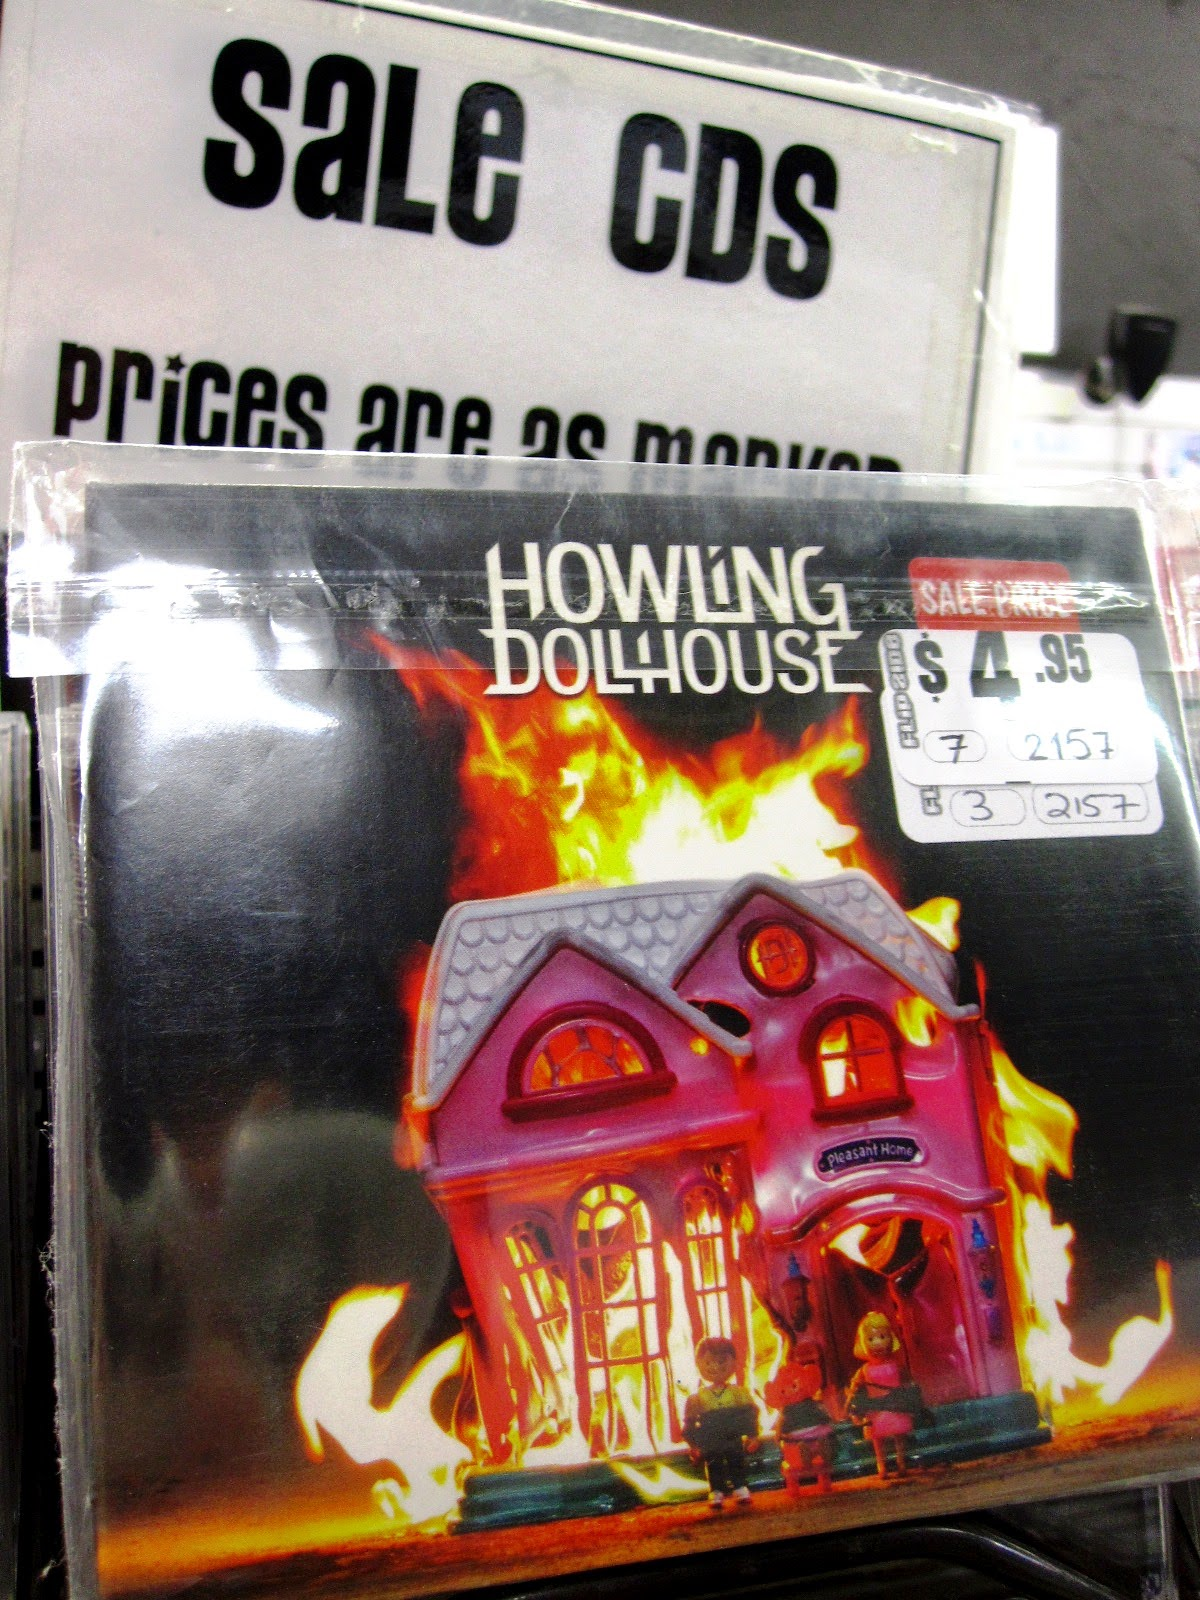 CD by the band Howling Dollhouse with a picture of a burning Fisher Price dollhouse on the front cover, in the sale bin.